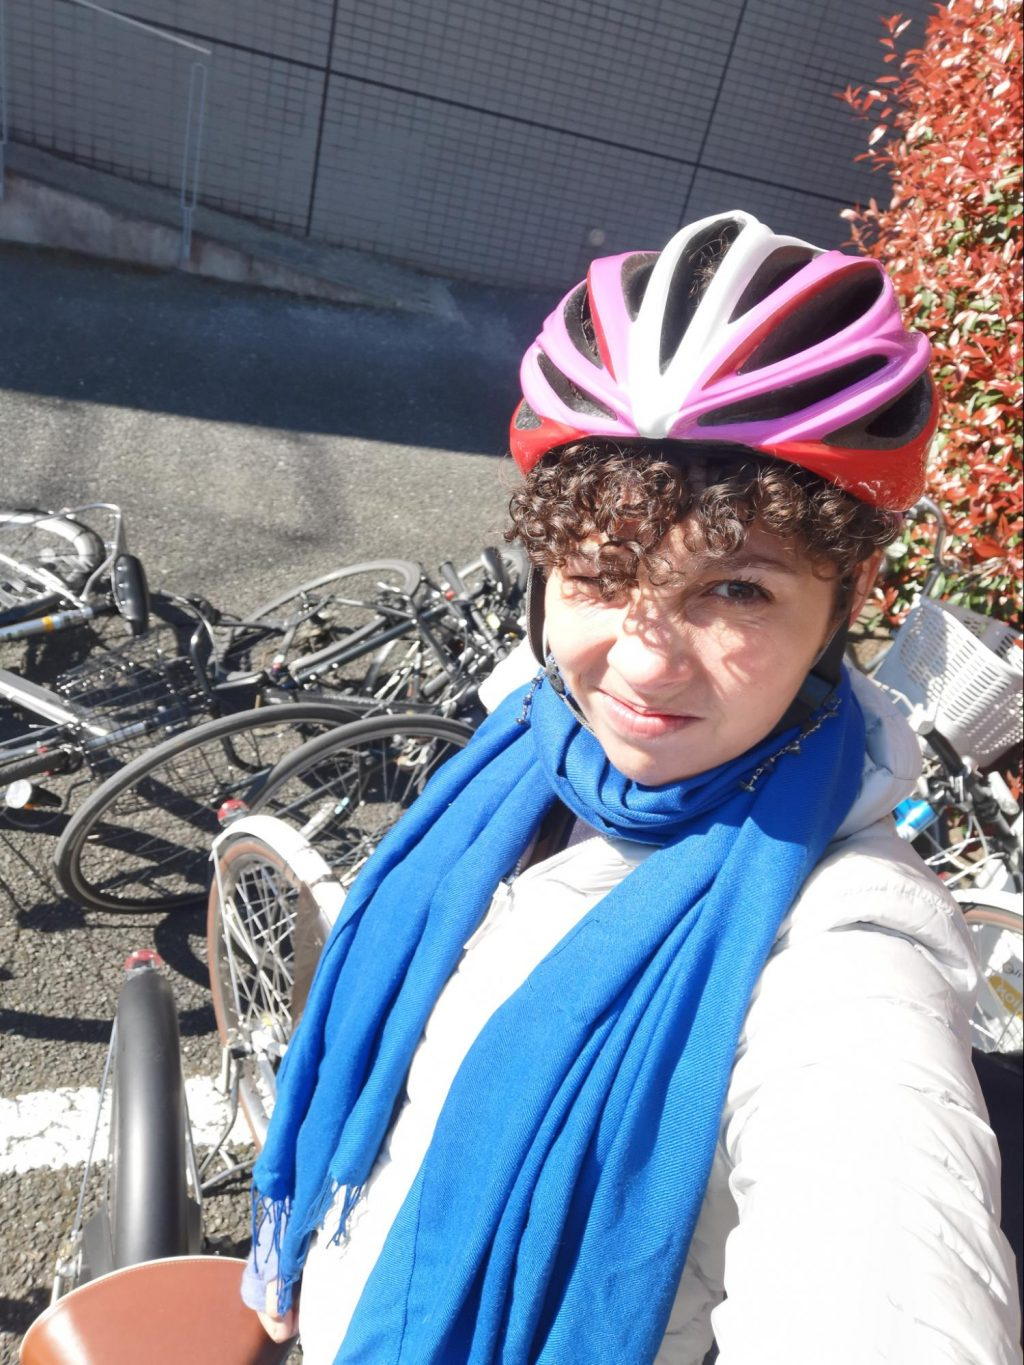 Selfie in front of the bike disaster area